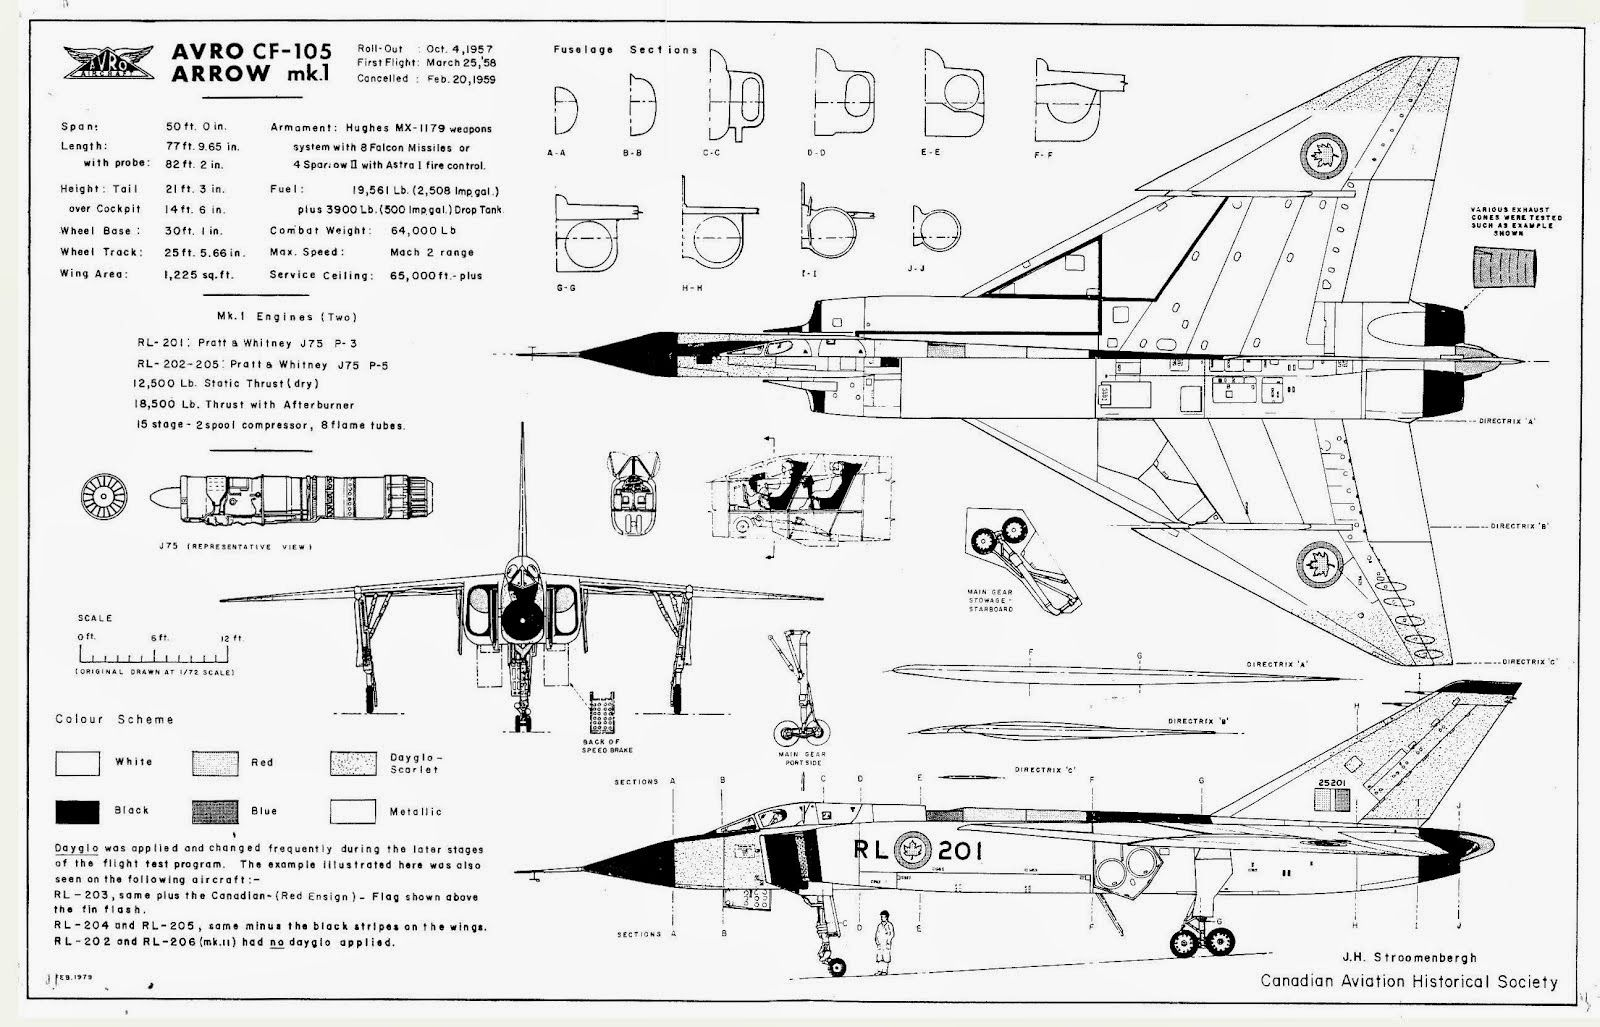 Jet Design Aircraft Diagram Just Another Wiring Blog Turbojet Engine Pin By I Hsuan Wang On Eminent Domain Adv V Pinterest Avro Rh Com Airplane